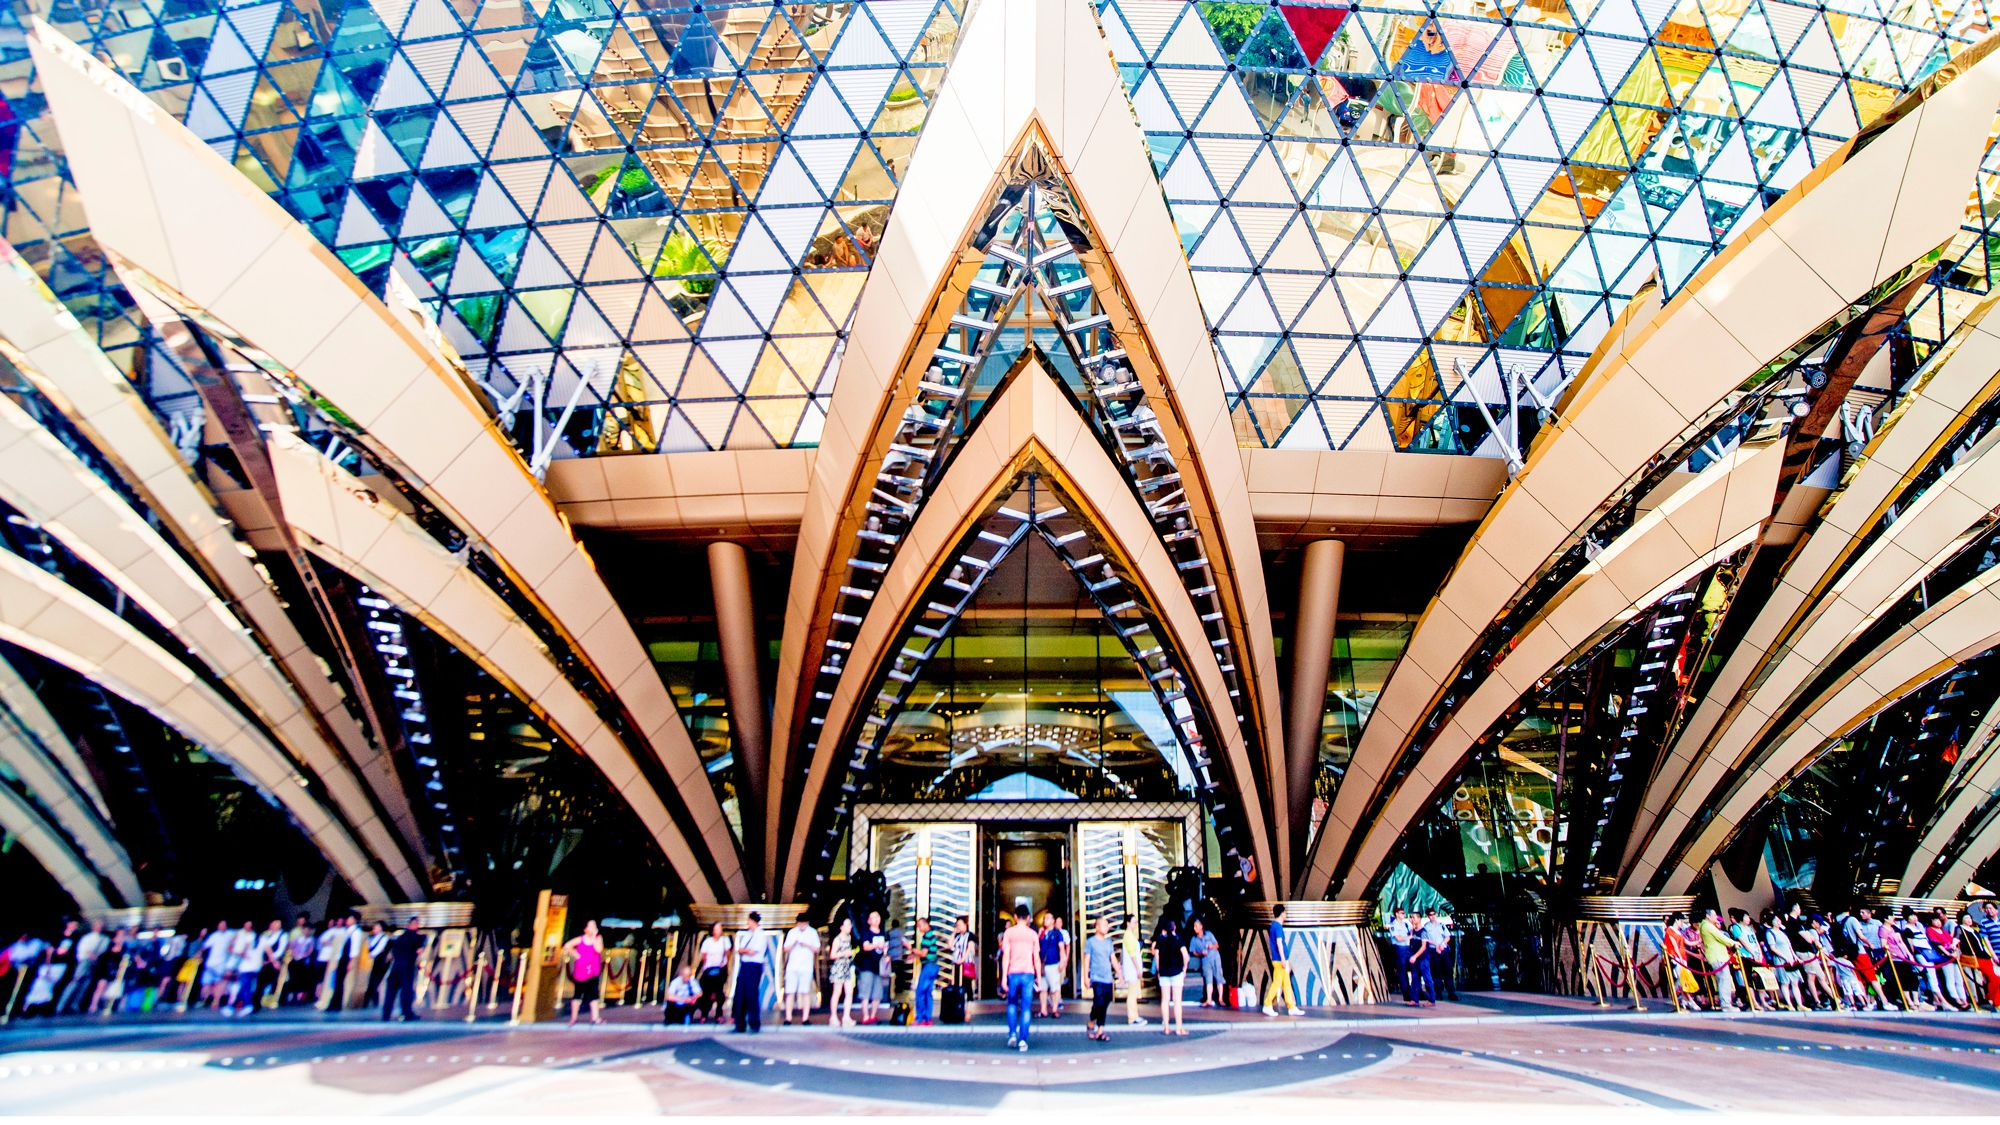 Full-Day Macau Tour with Buffet Lunch